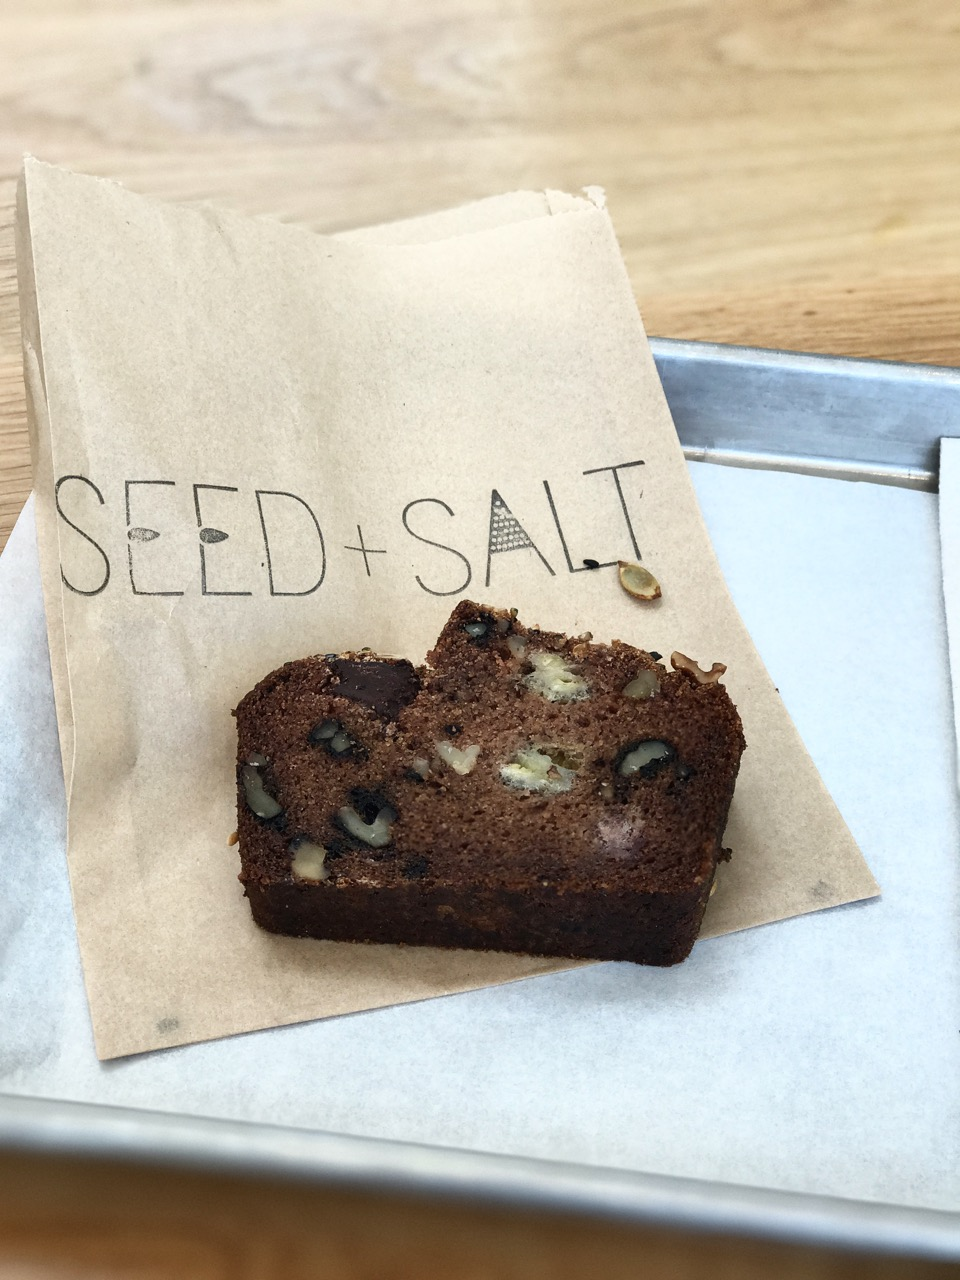 Vegan chocolate, walnut & banana bread from Seed + Salt, San Francisco.